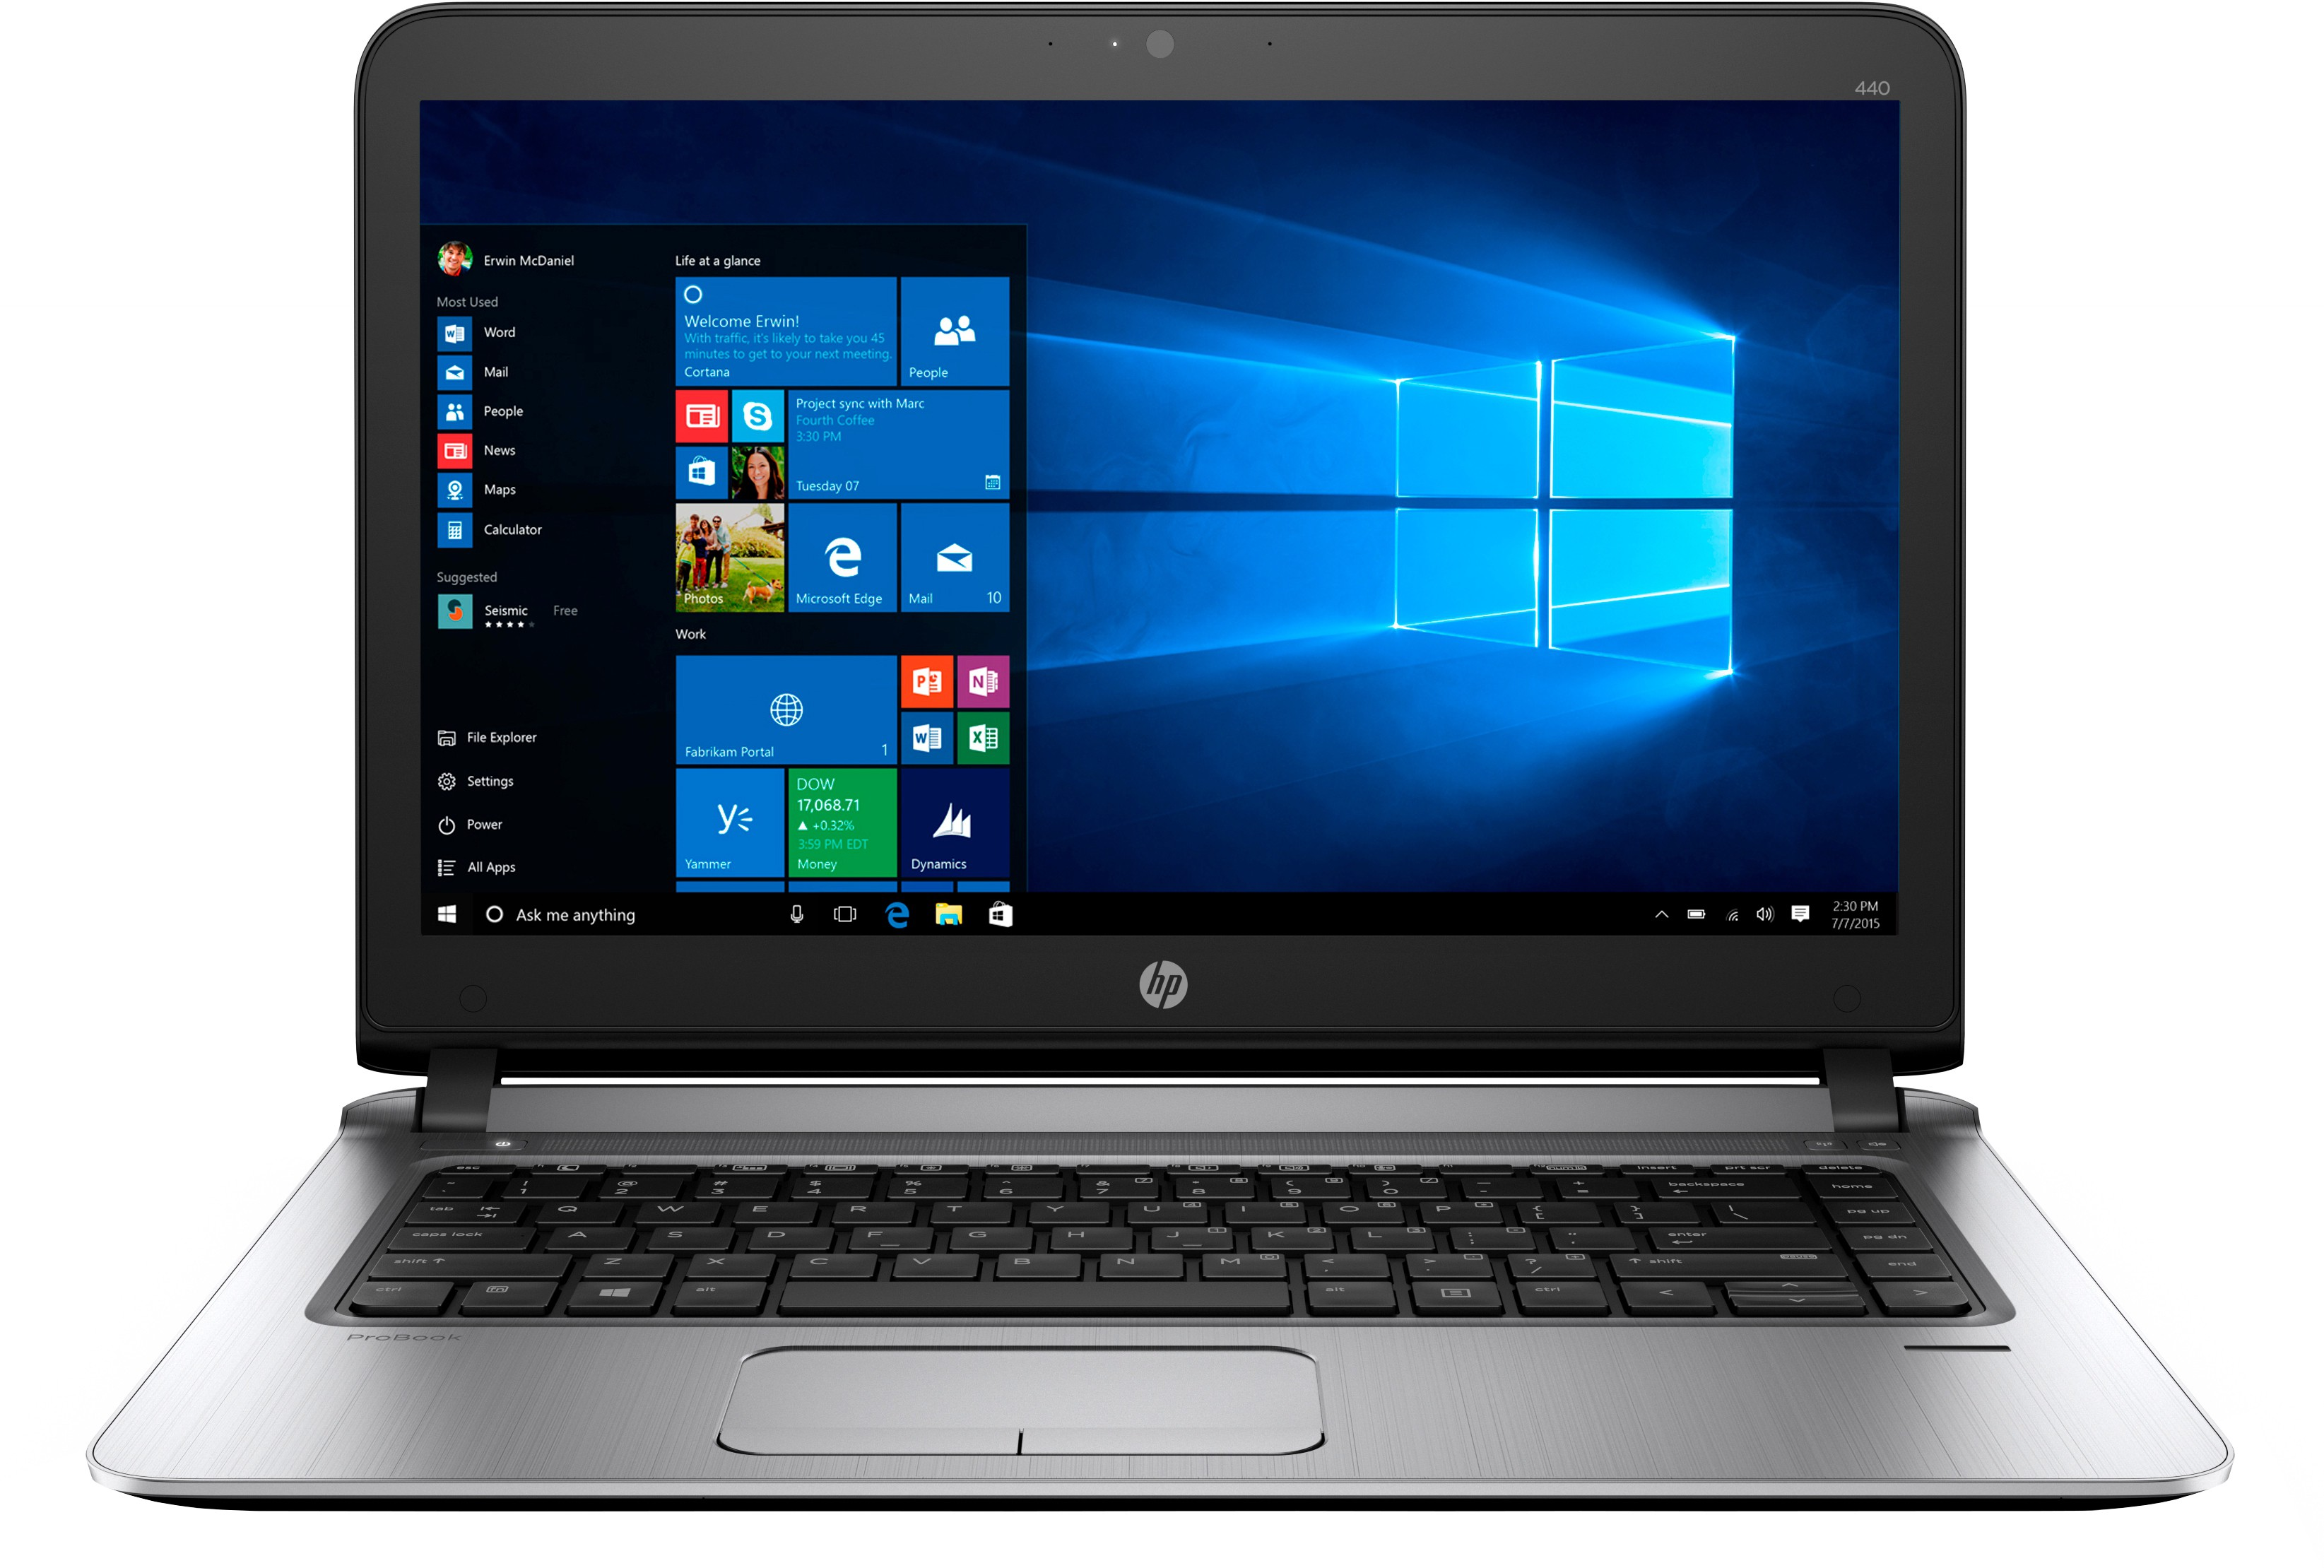 HP ProBook Core i3 7th Gen - (4 GB/500 GB HDD/Windows 10 Pro) 440 Notebook(14 inch, SIlver)   Laptop  (HP)